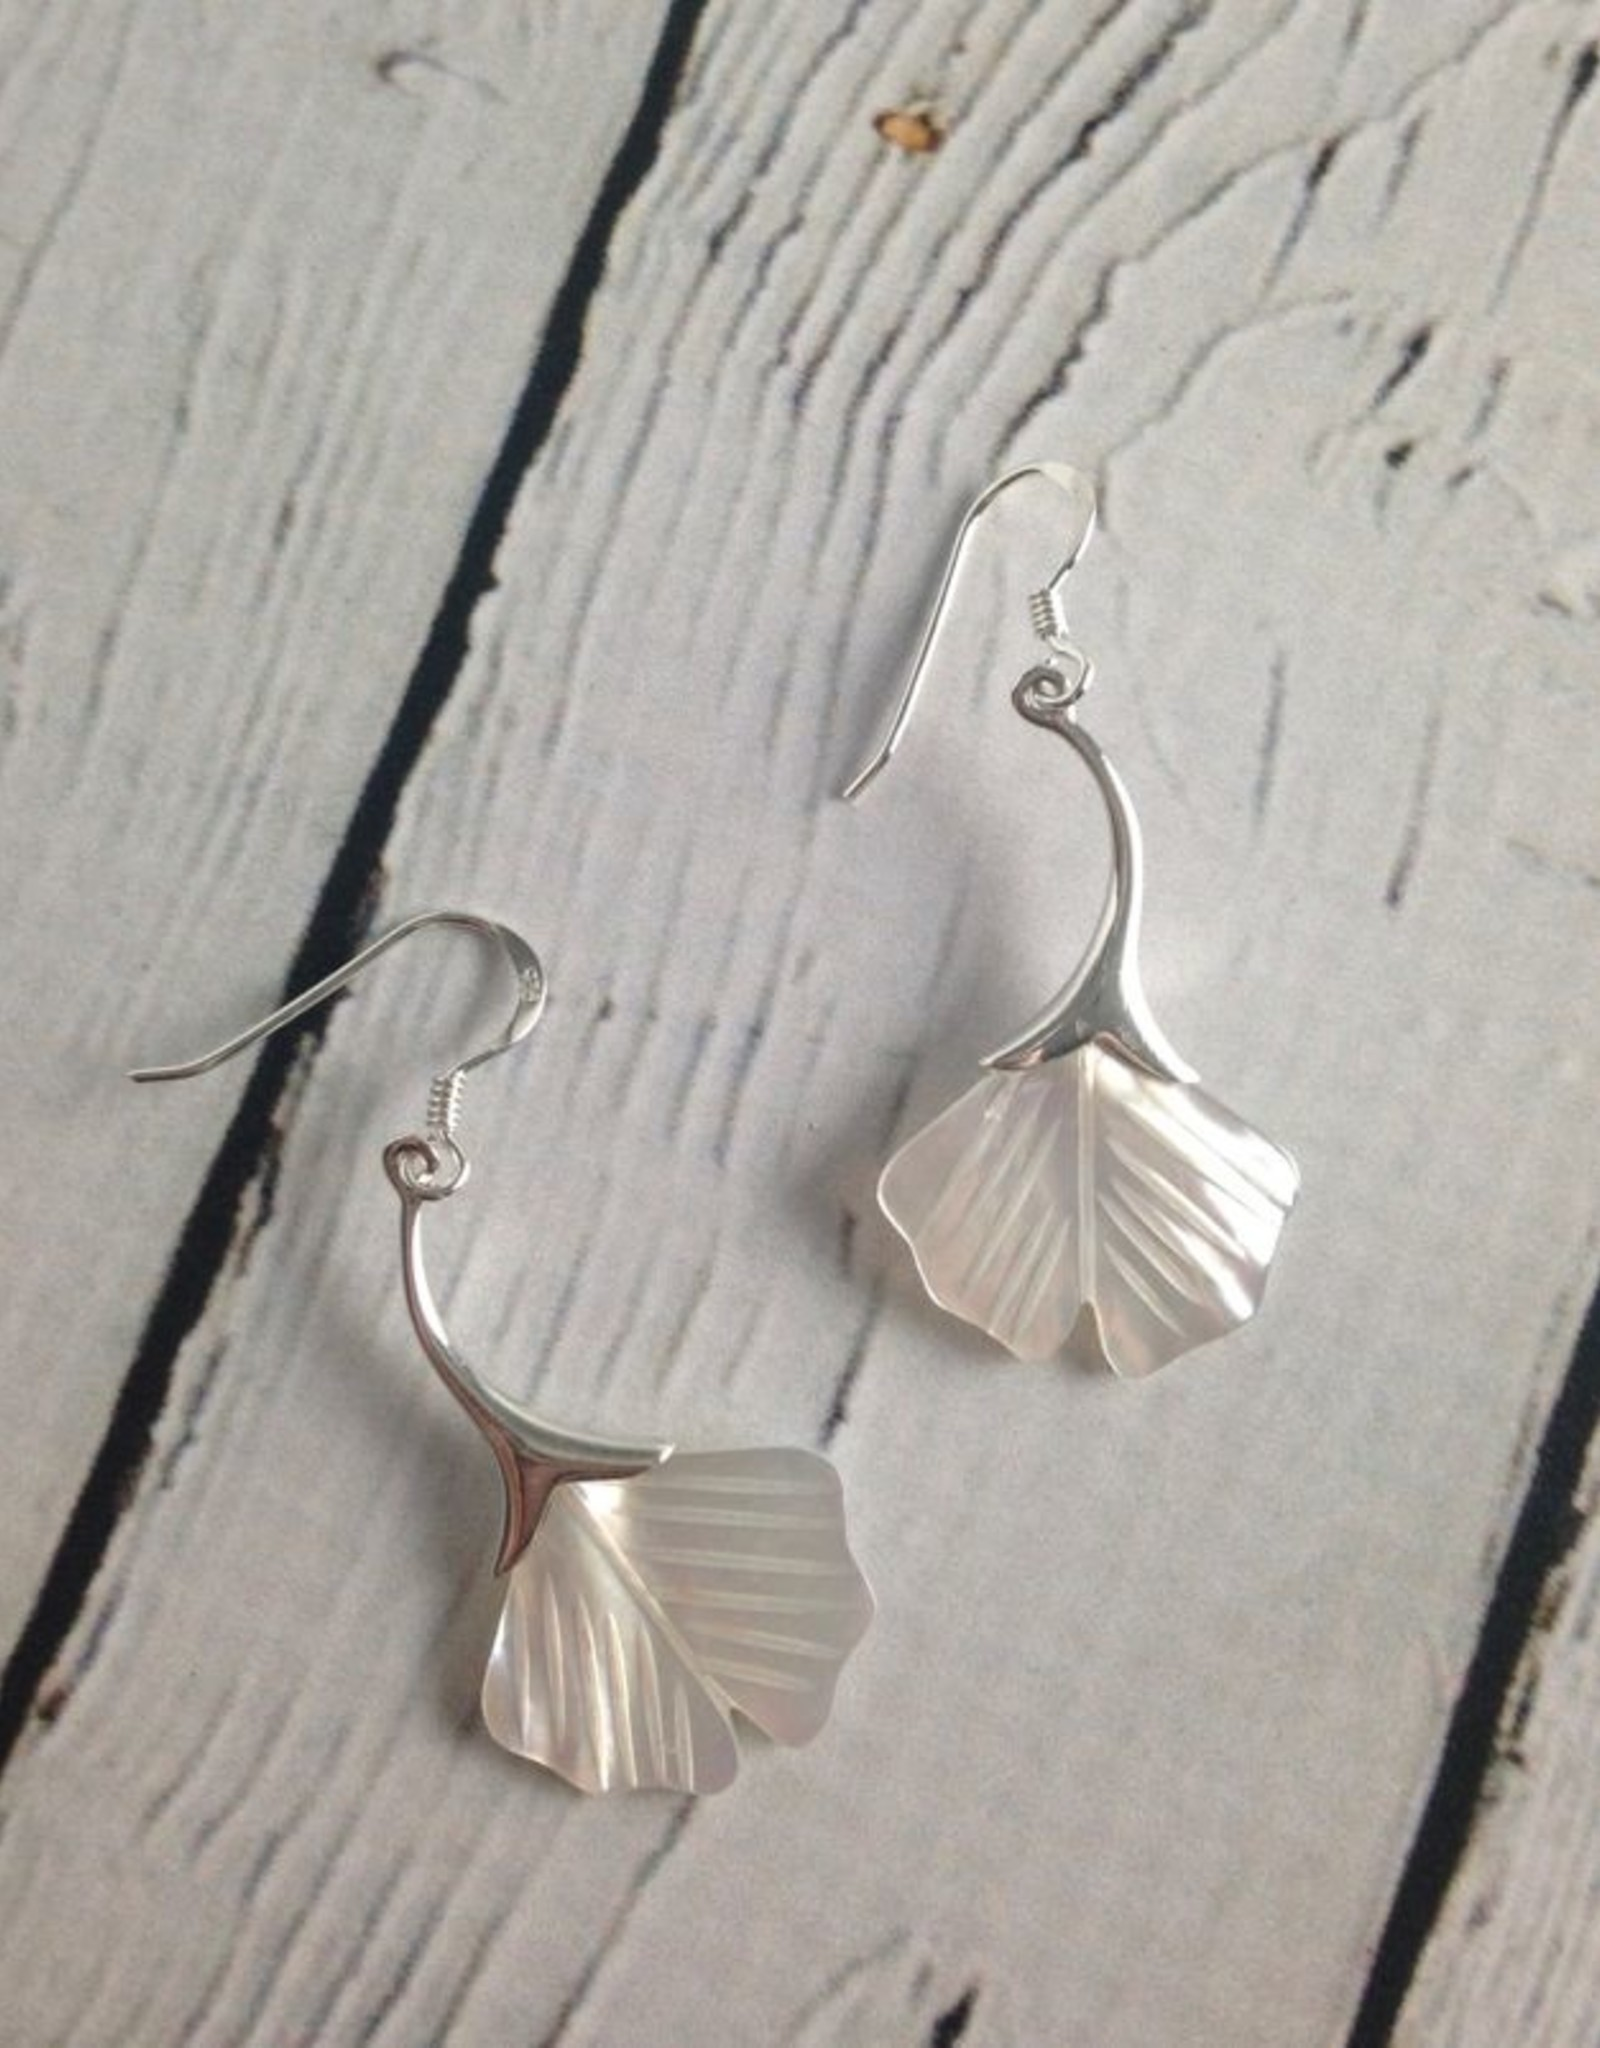 TigerMtn Silver and Mother-of-Pearl Ginkgo Leaf Dangle Earrings